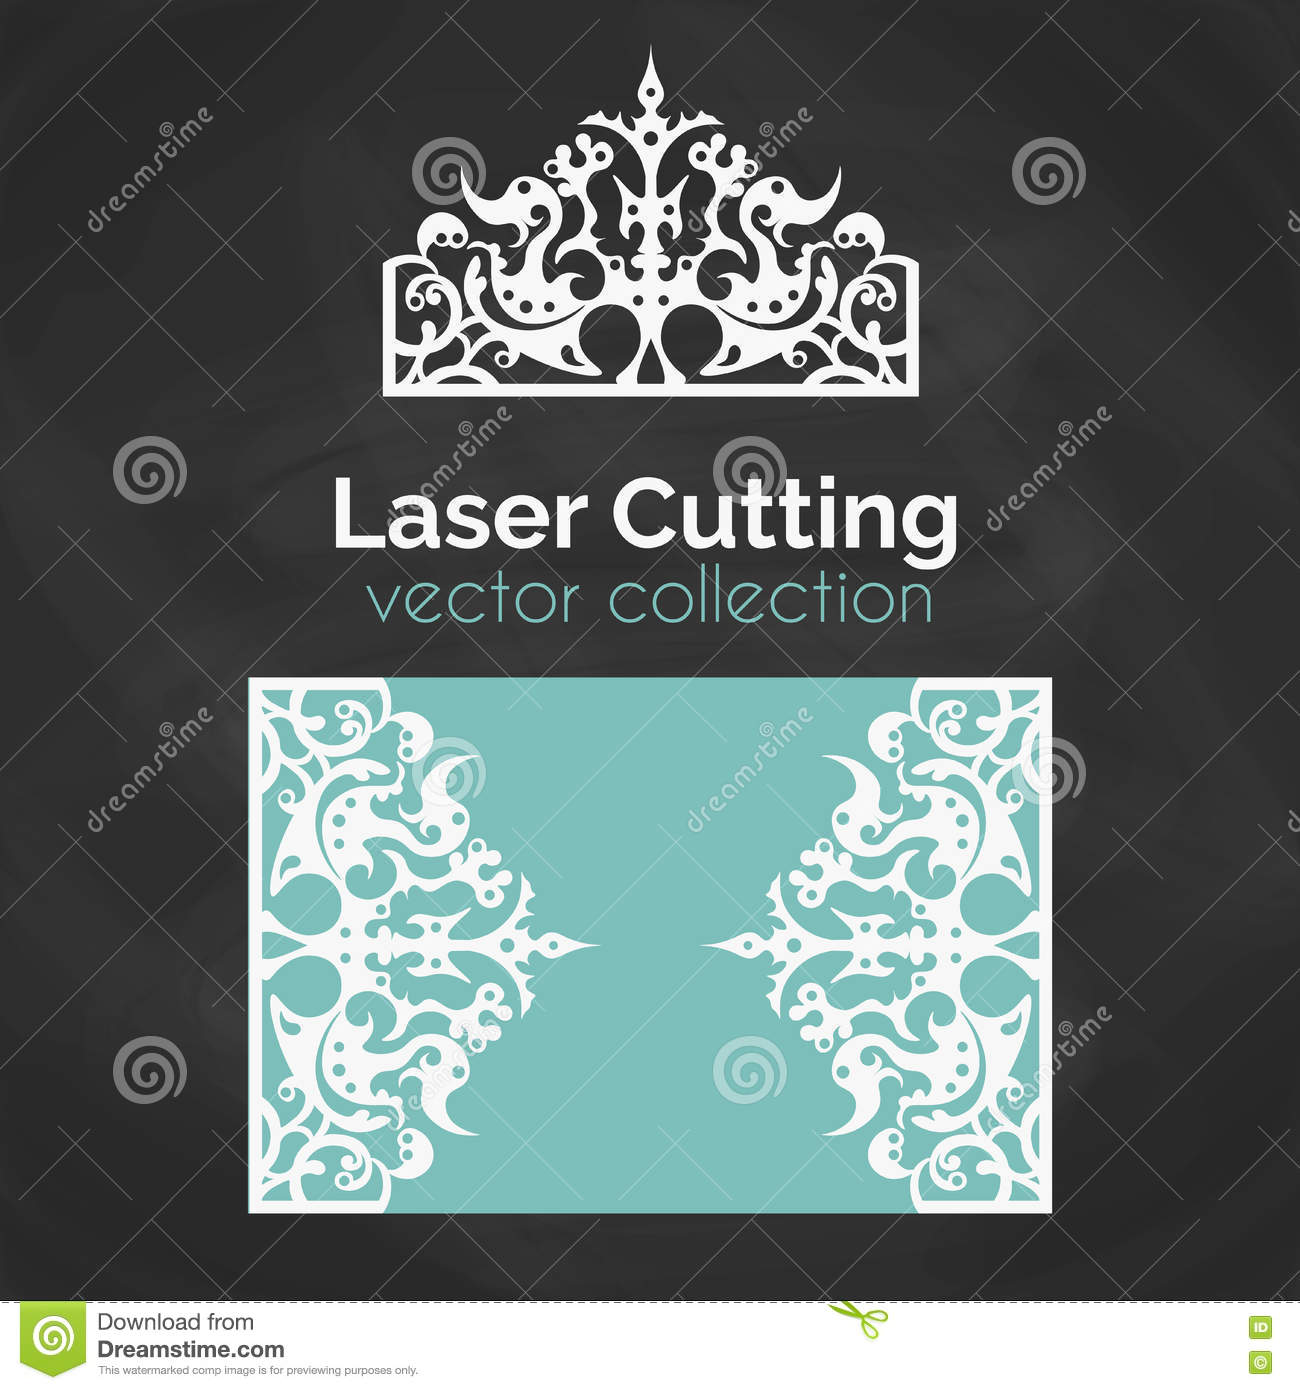 Laser Cut Card Template For Cutting Cutout Illustration With Crown Decoration Die Wedding Invitation: Cut Out Wedding Invitation Card Templates At Websimilar.org